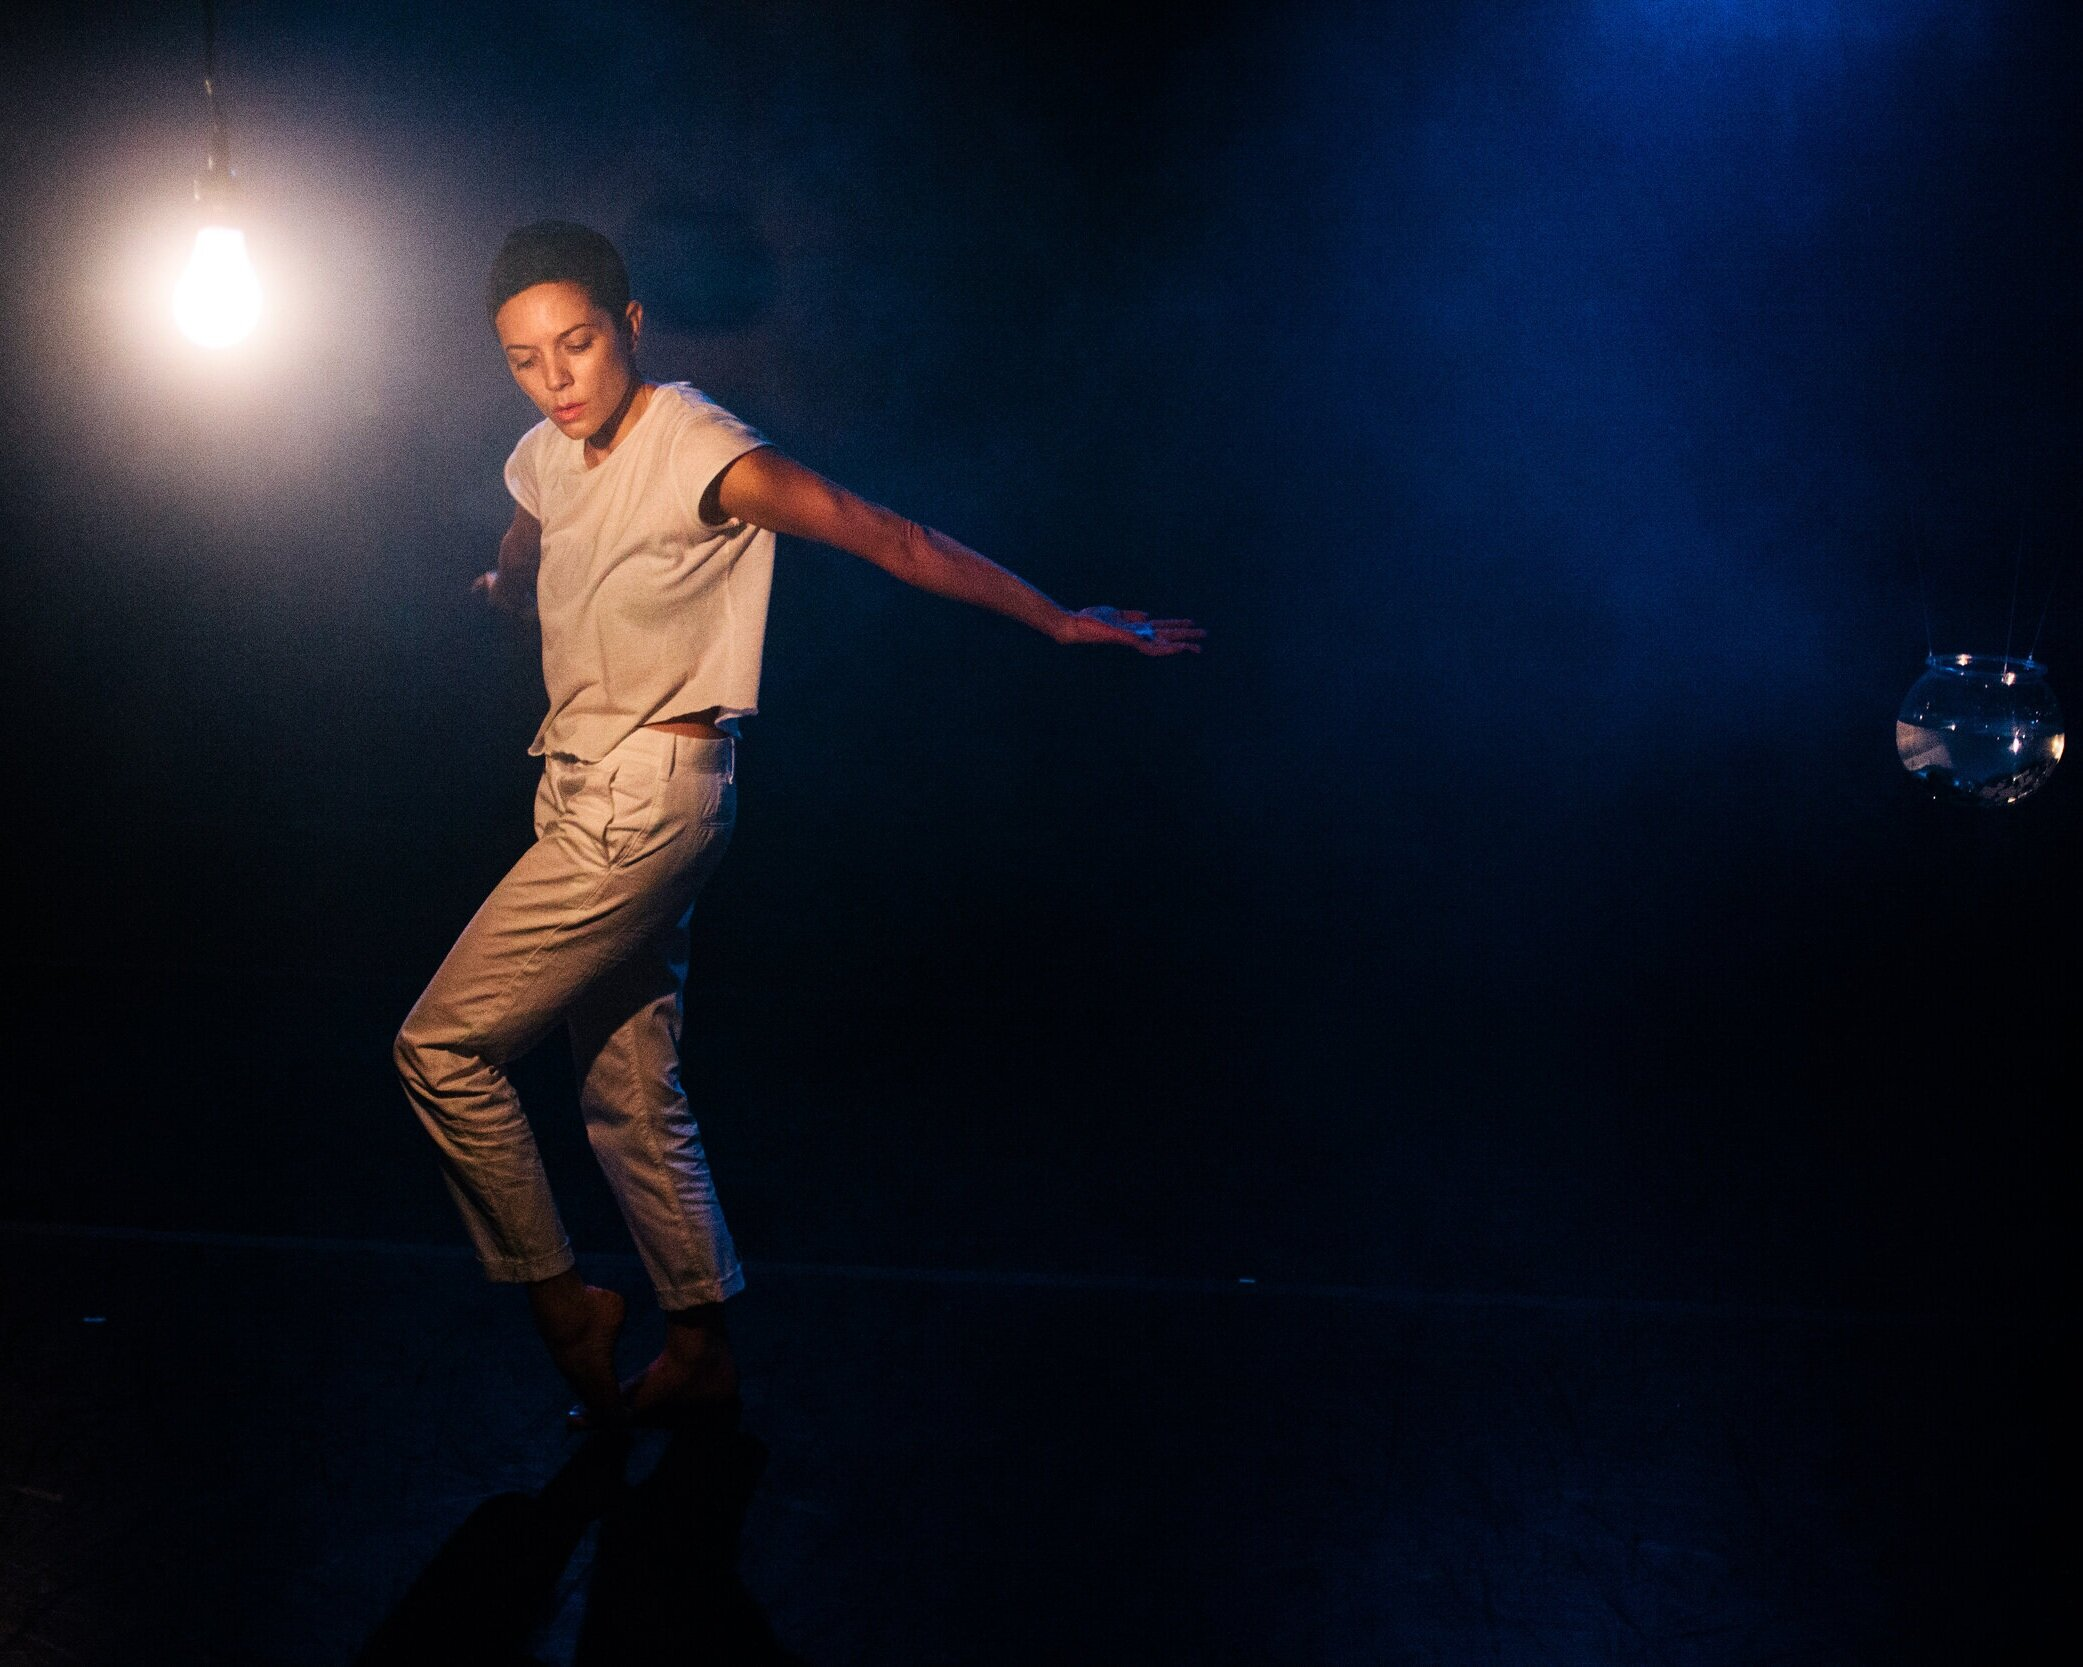 Rachel Mckinstry - I am a Brooklyn-based dance artist, who makes work that lives in the immediate moment and disappears as soon as it made. She believes that art is the result of is a combination of magic, craft, mining, and seance. It's an experiment.